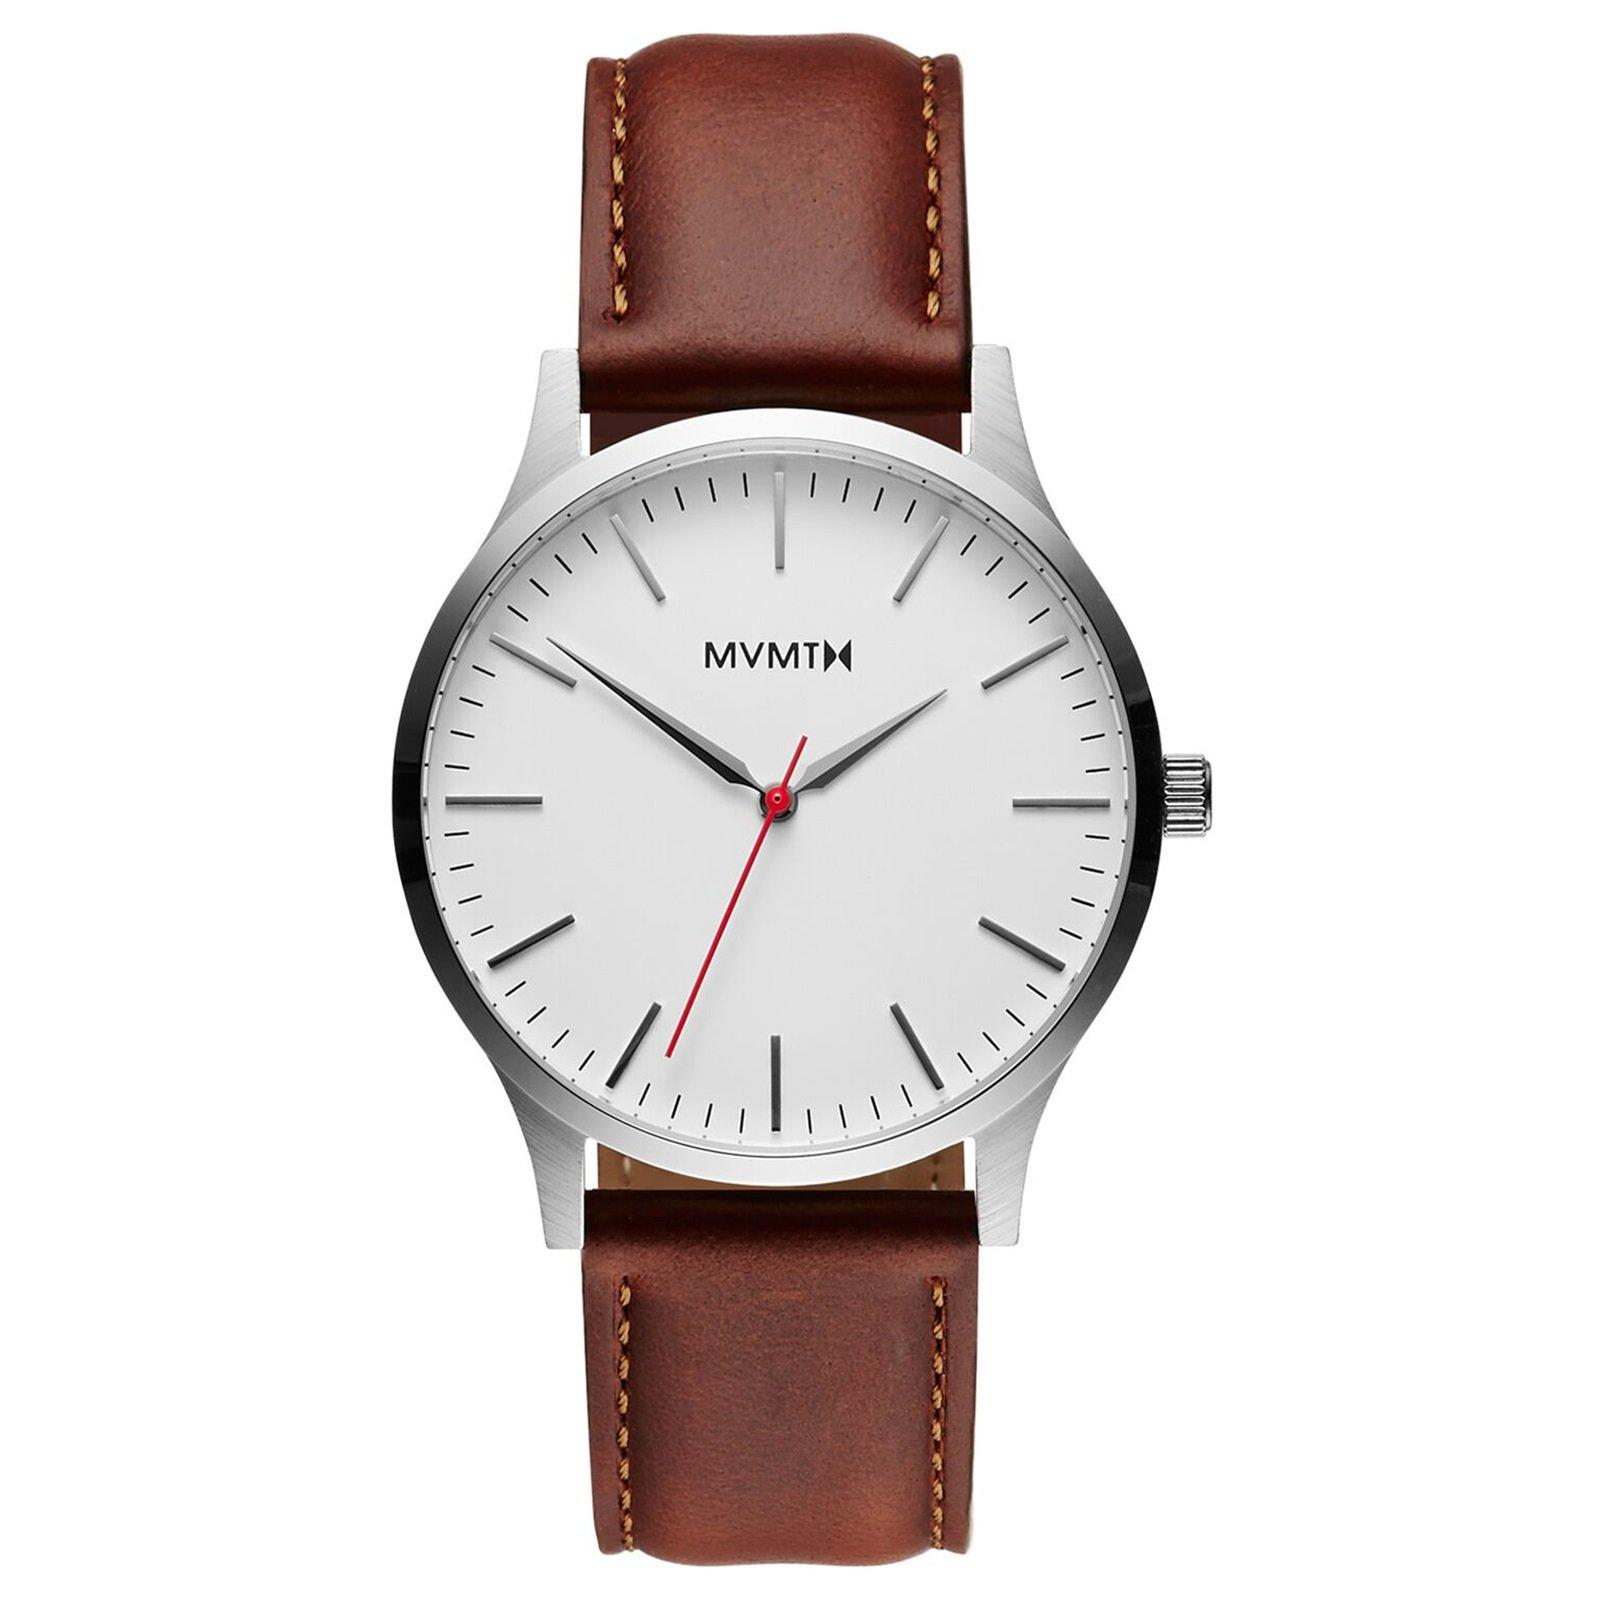 MVMT 40 Series Men's Watch